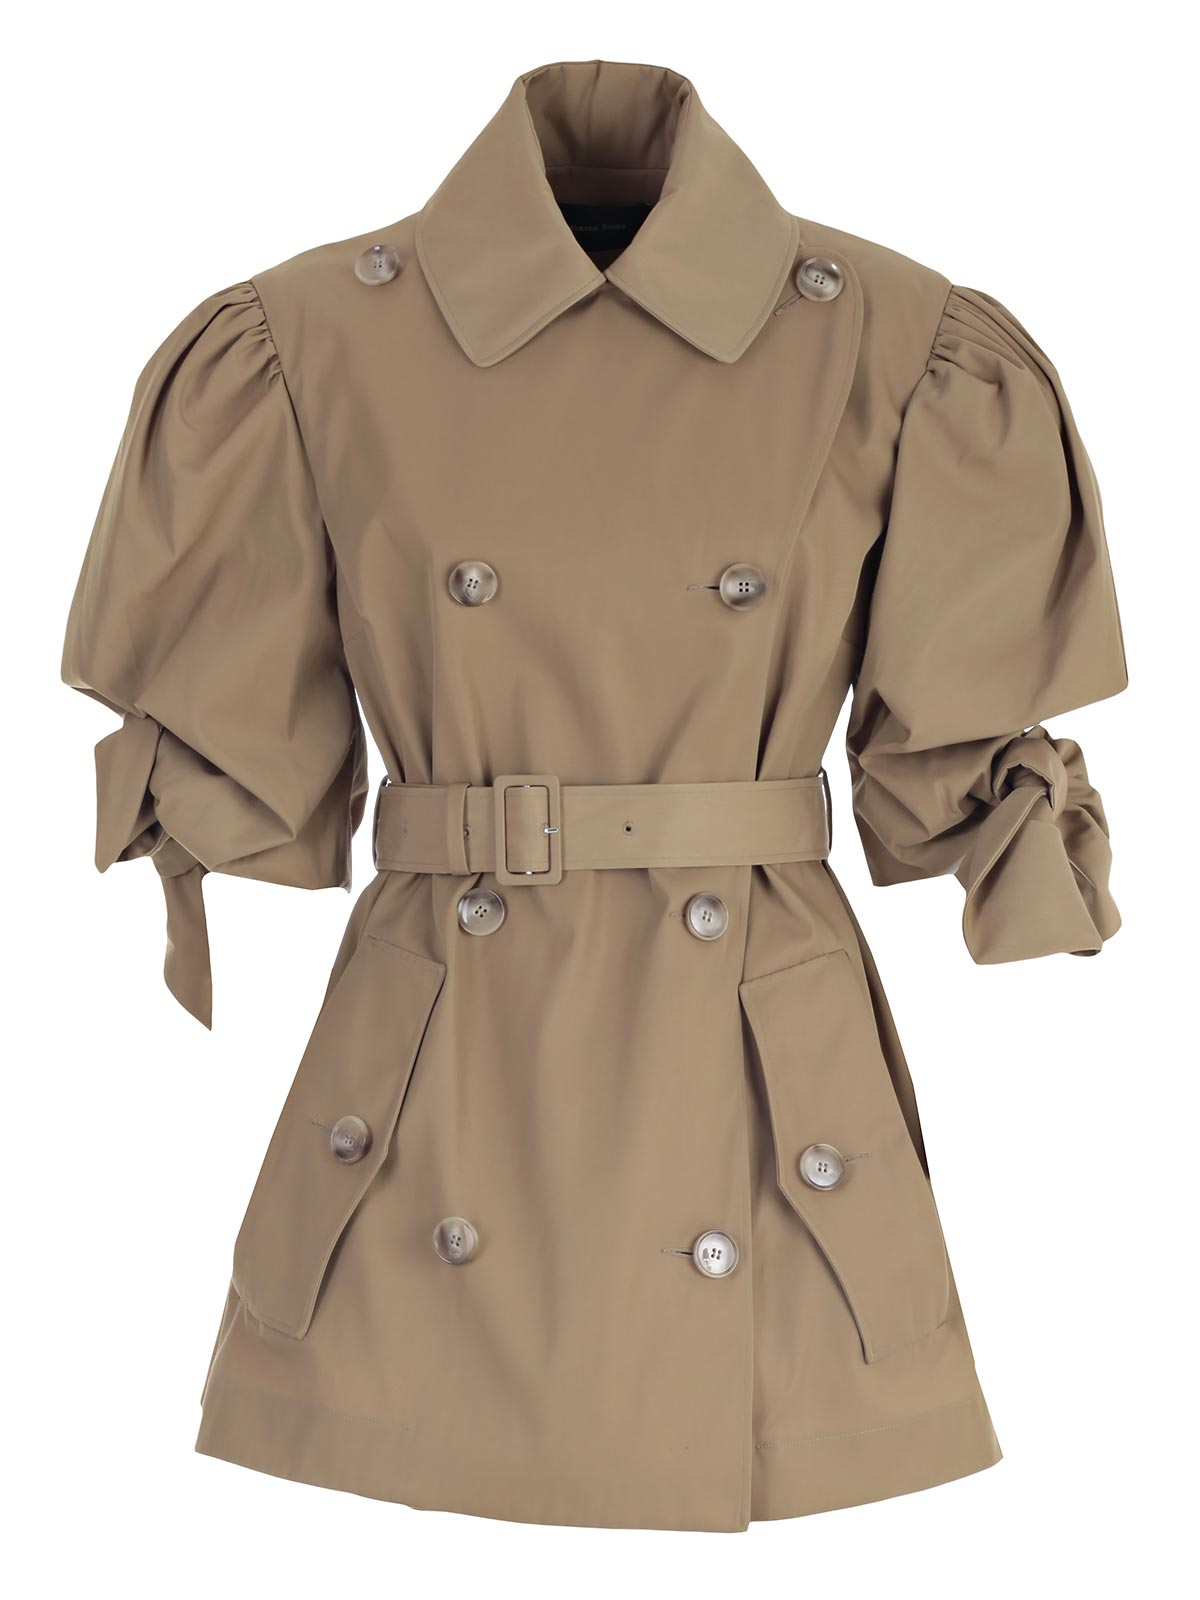 Picture of SIMONE ROCHA Trench